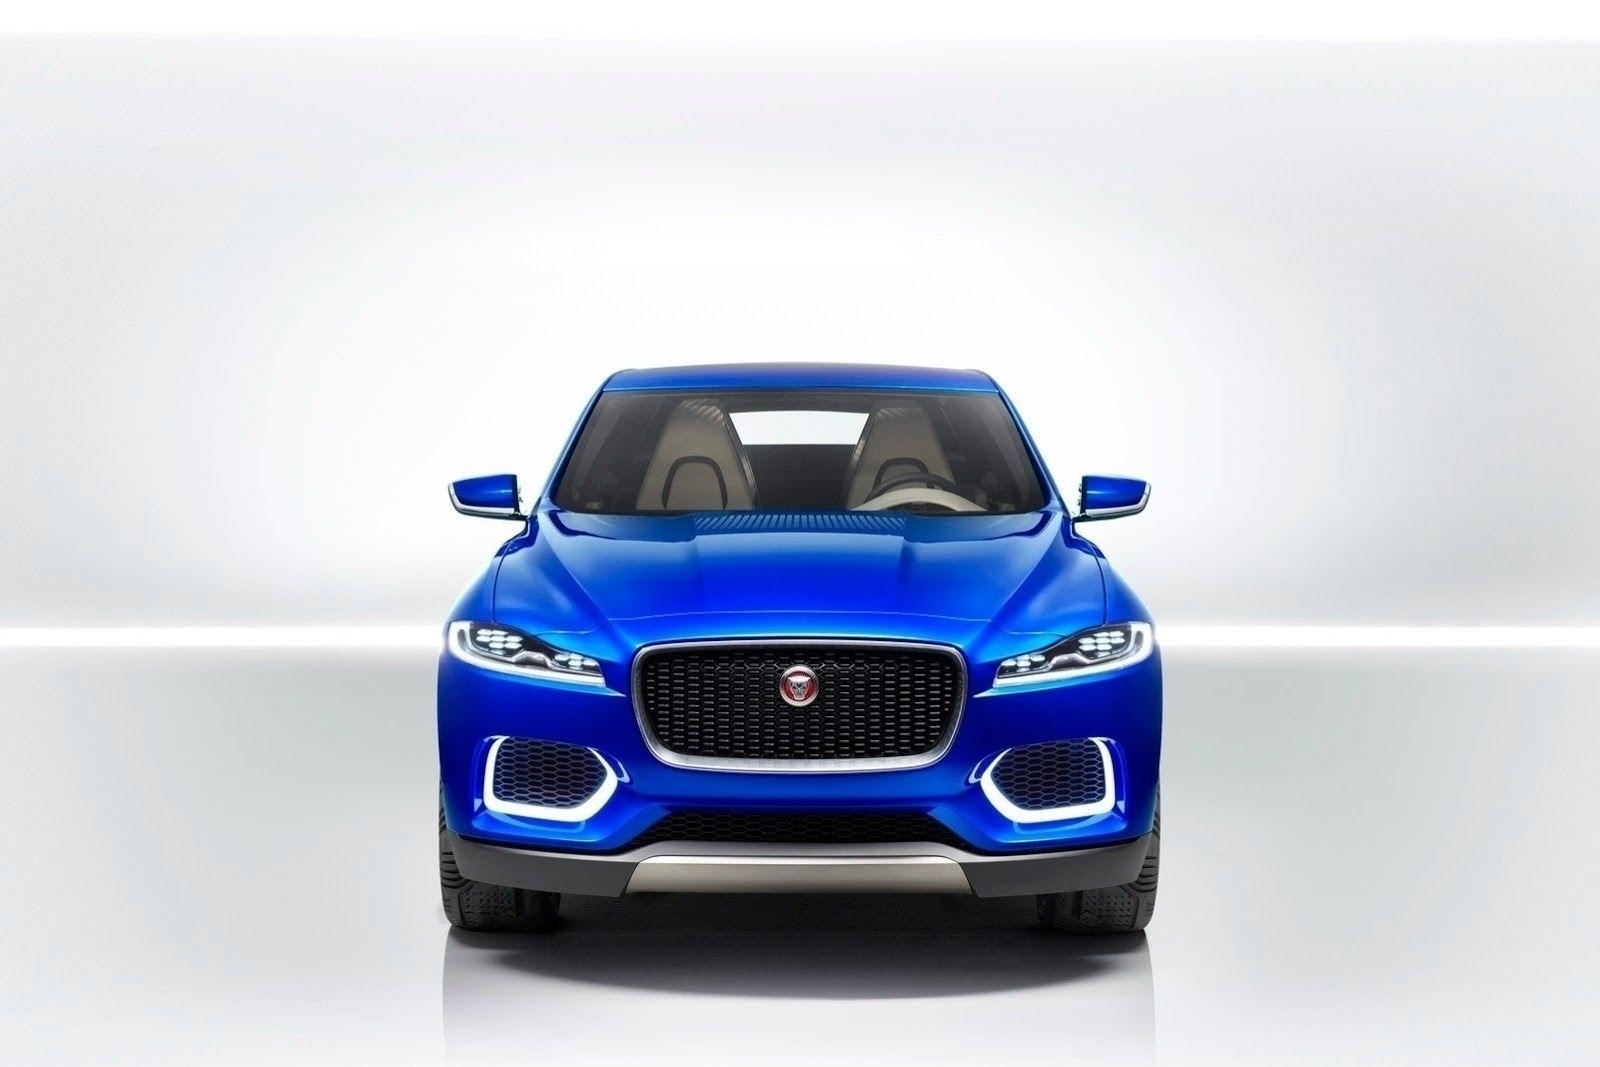 81 A 2019 Jaguar C X17 Crossover Redesign and Review